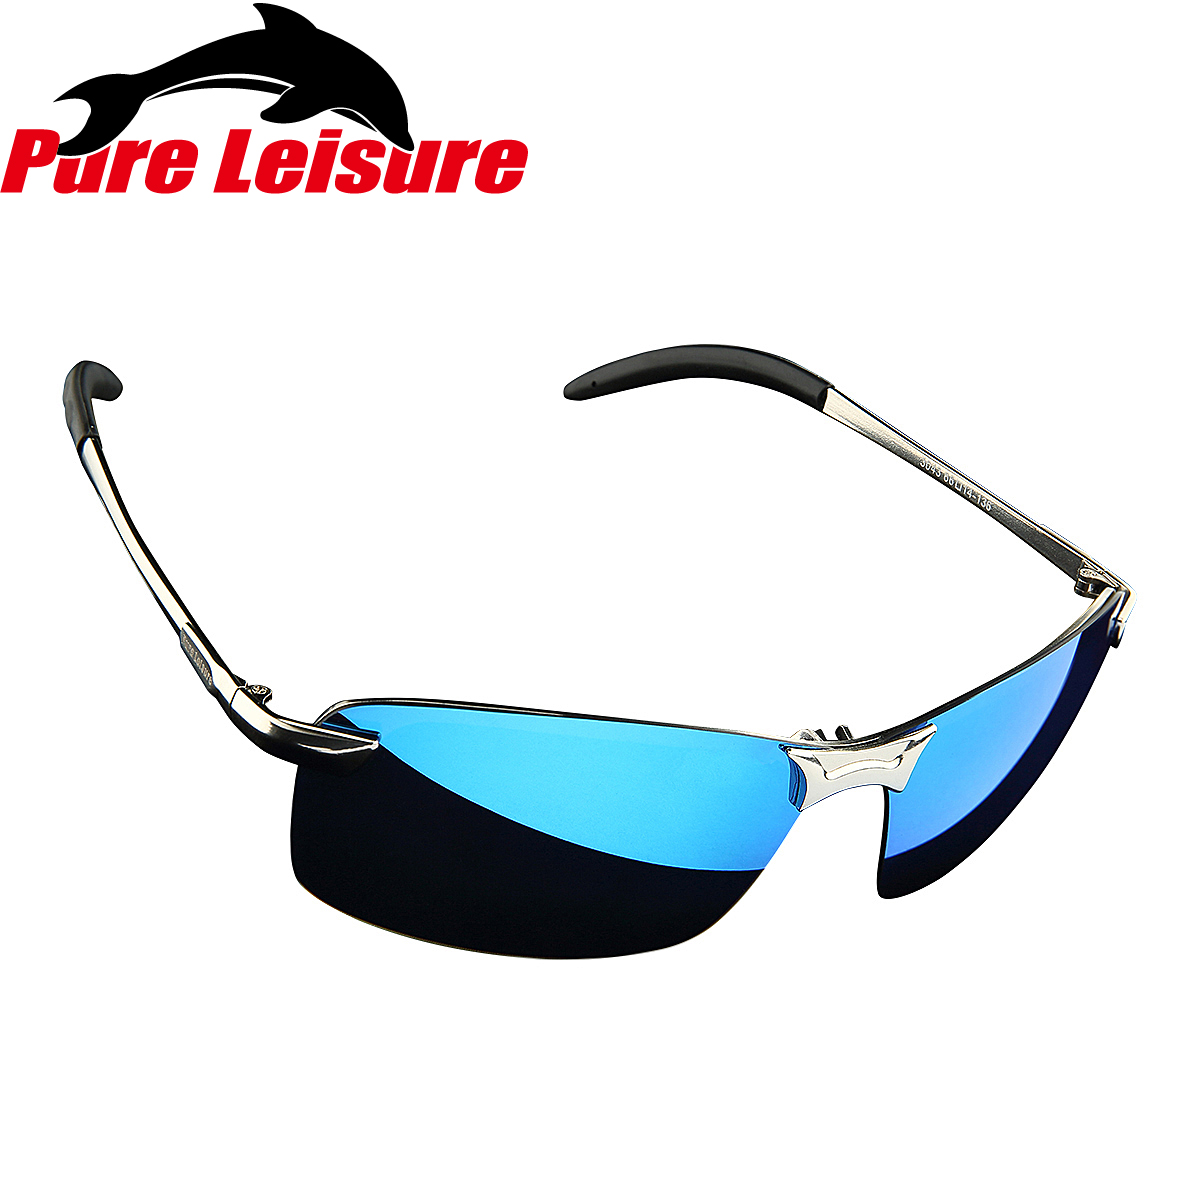 6c14a34bcc2d PureLeisure Clip On Sunglasses Anti UV Glasses Lunette Polarisantes Homme  Occhiali Da Sole Uomo Clip Peche for Fishing Eyewear-in Fishing Eyewear  from ...